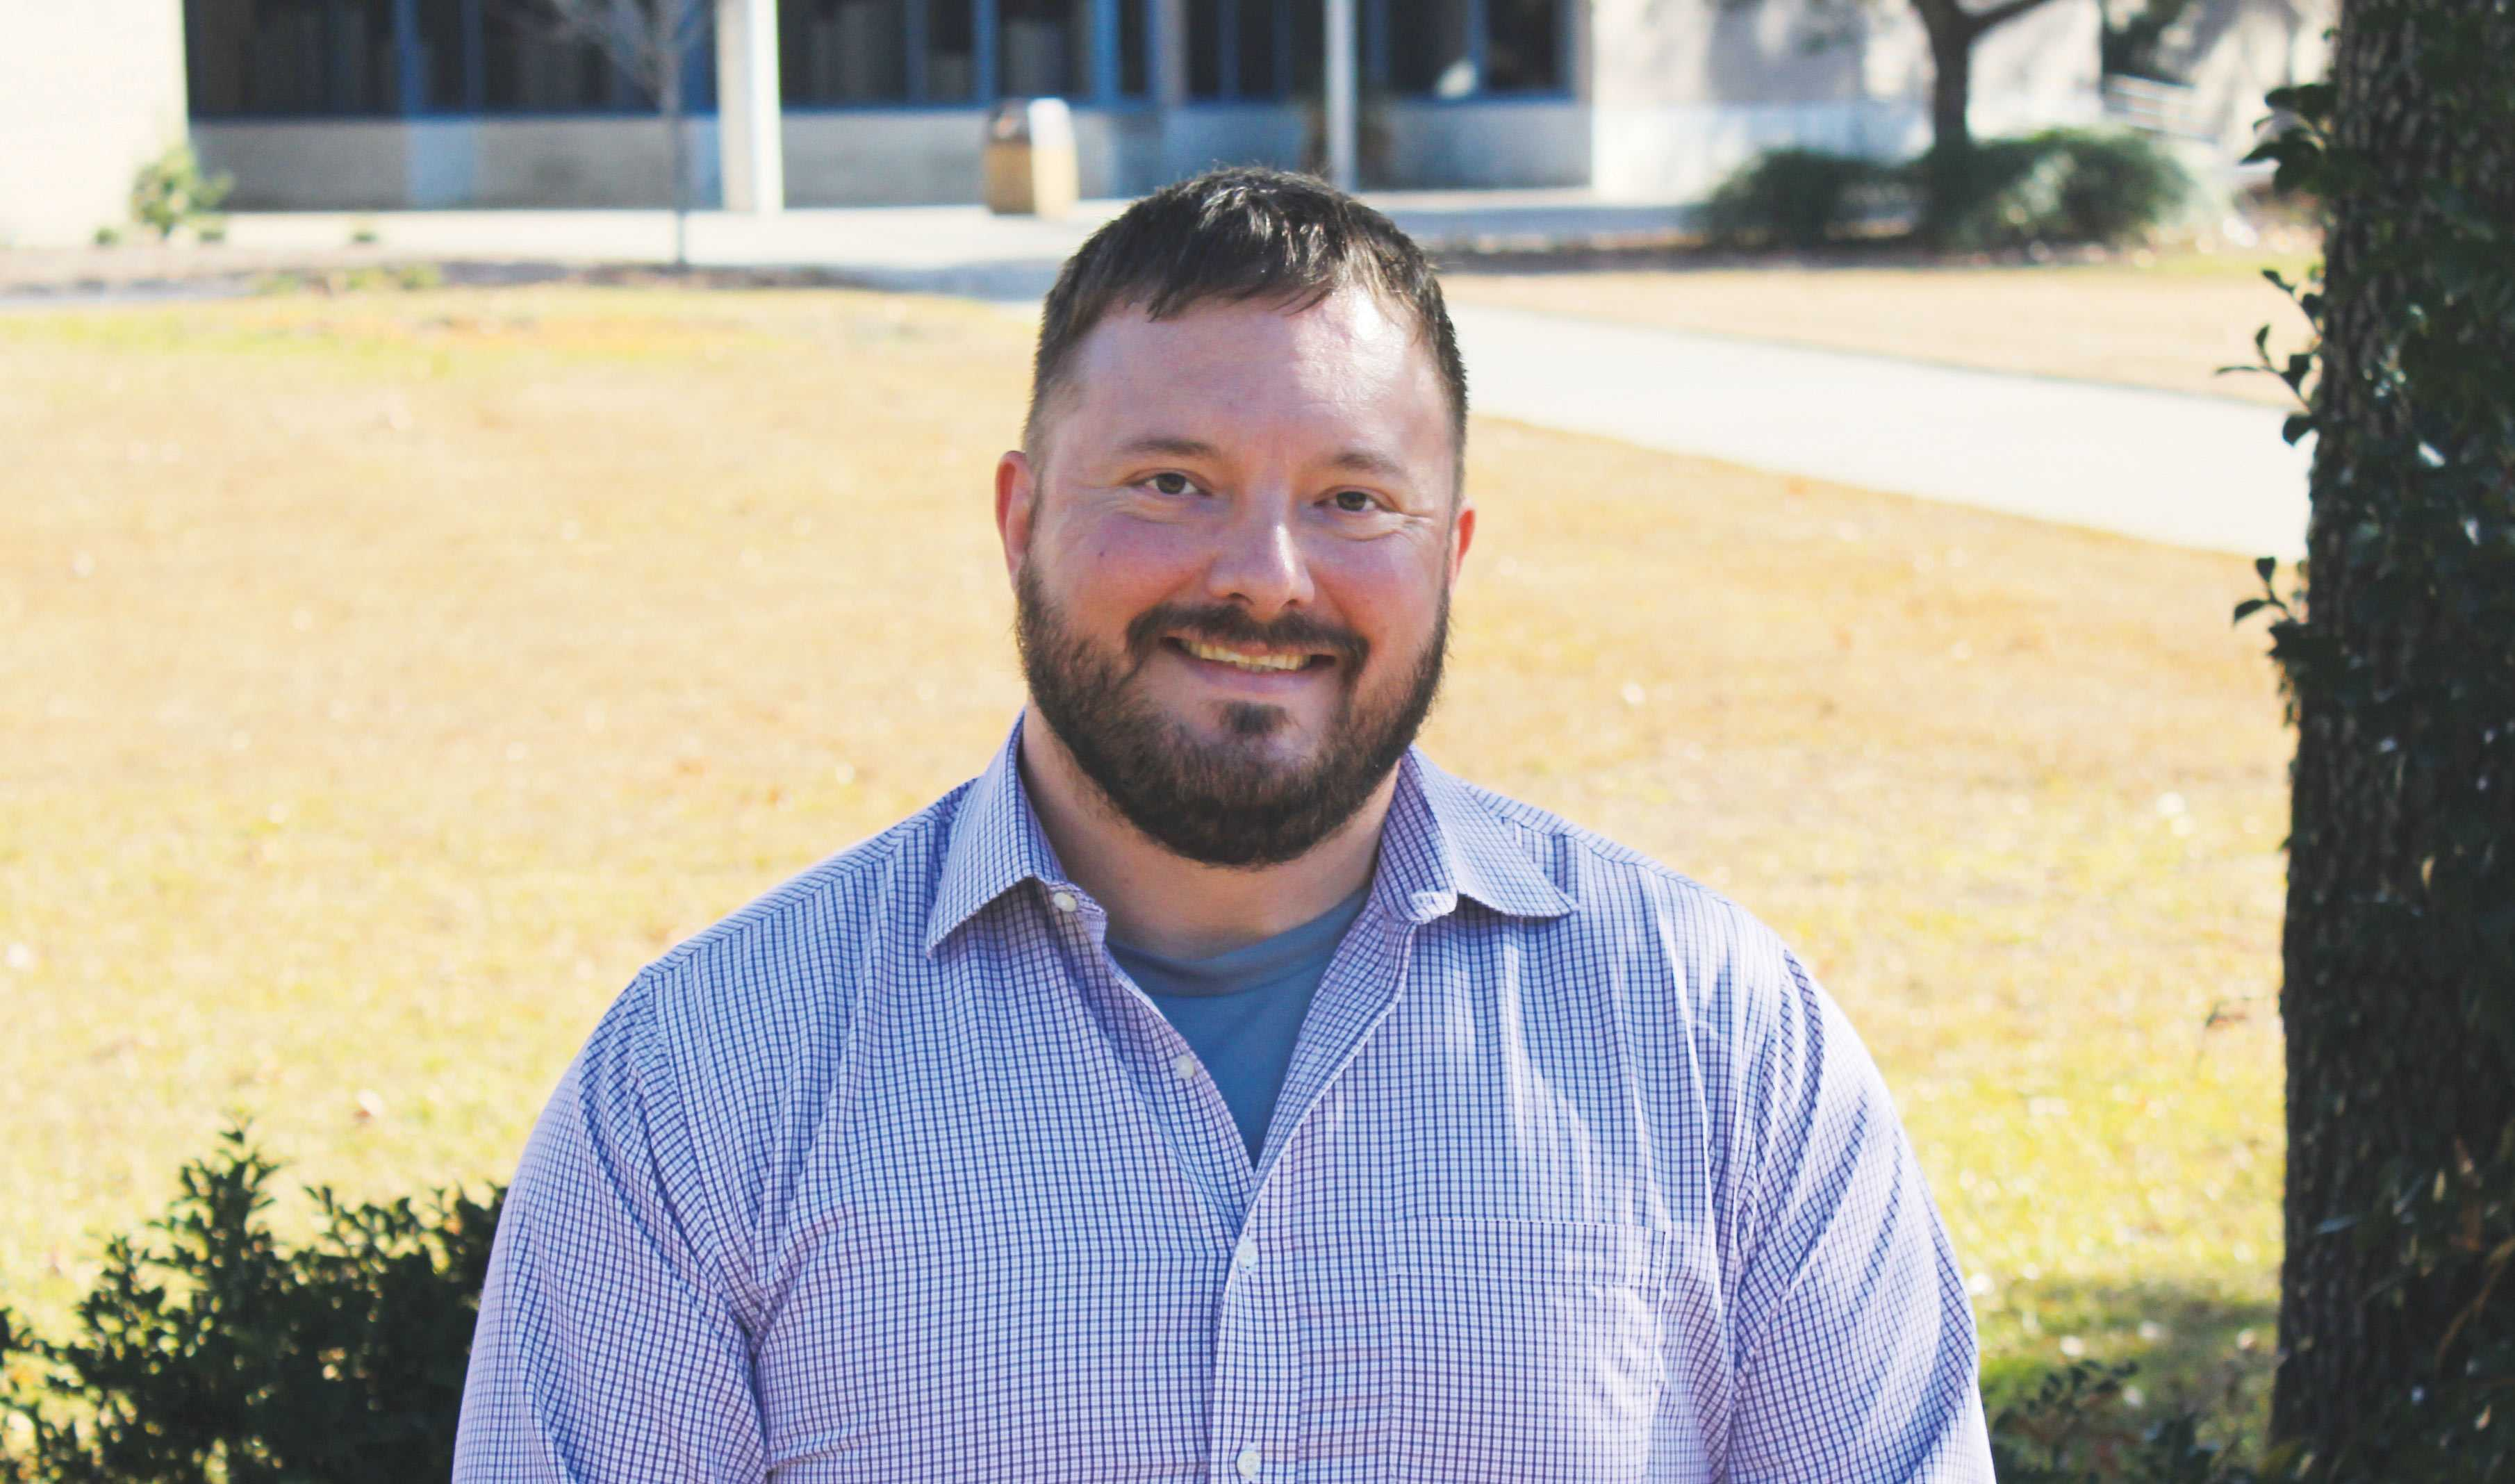 Professor Jeremy Lewis studies robotics to help better marine research. He hopes to create a robot capable of taking photos of reefs from under the water to help scientists study the marine life.